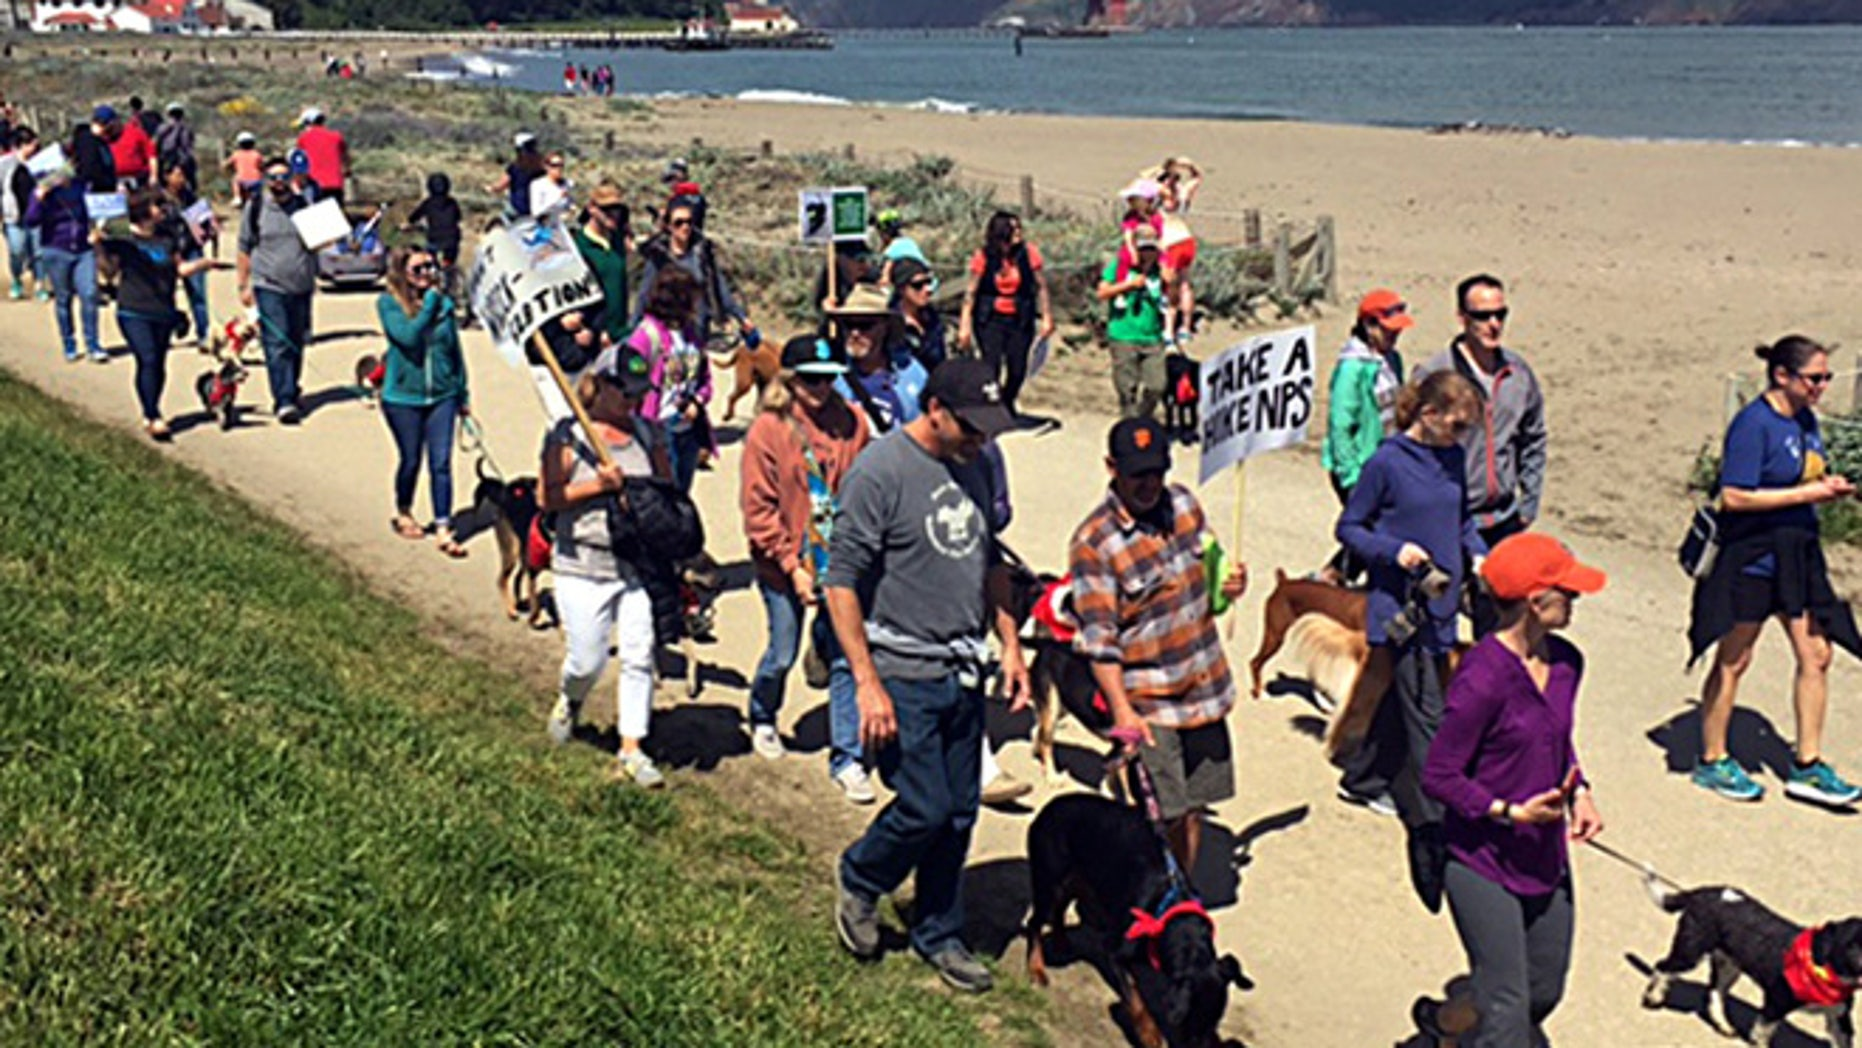 Hundreds of dog owners march with their four-legged pooches to protest the National Park Service's proposed limits on dog walking at Crissy Field in San Francisco's Golden Gate National Recreation Area Saturday, April 23, 2016. (Kevin Schultz/San Francisco Chronicle via AP) MANDATORY CREDIT PHOTOG & CHRONICLE; MAGS OUT; NO SALES